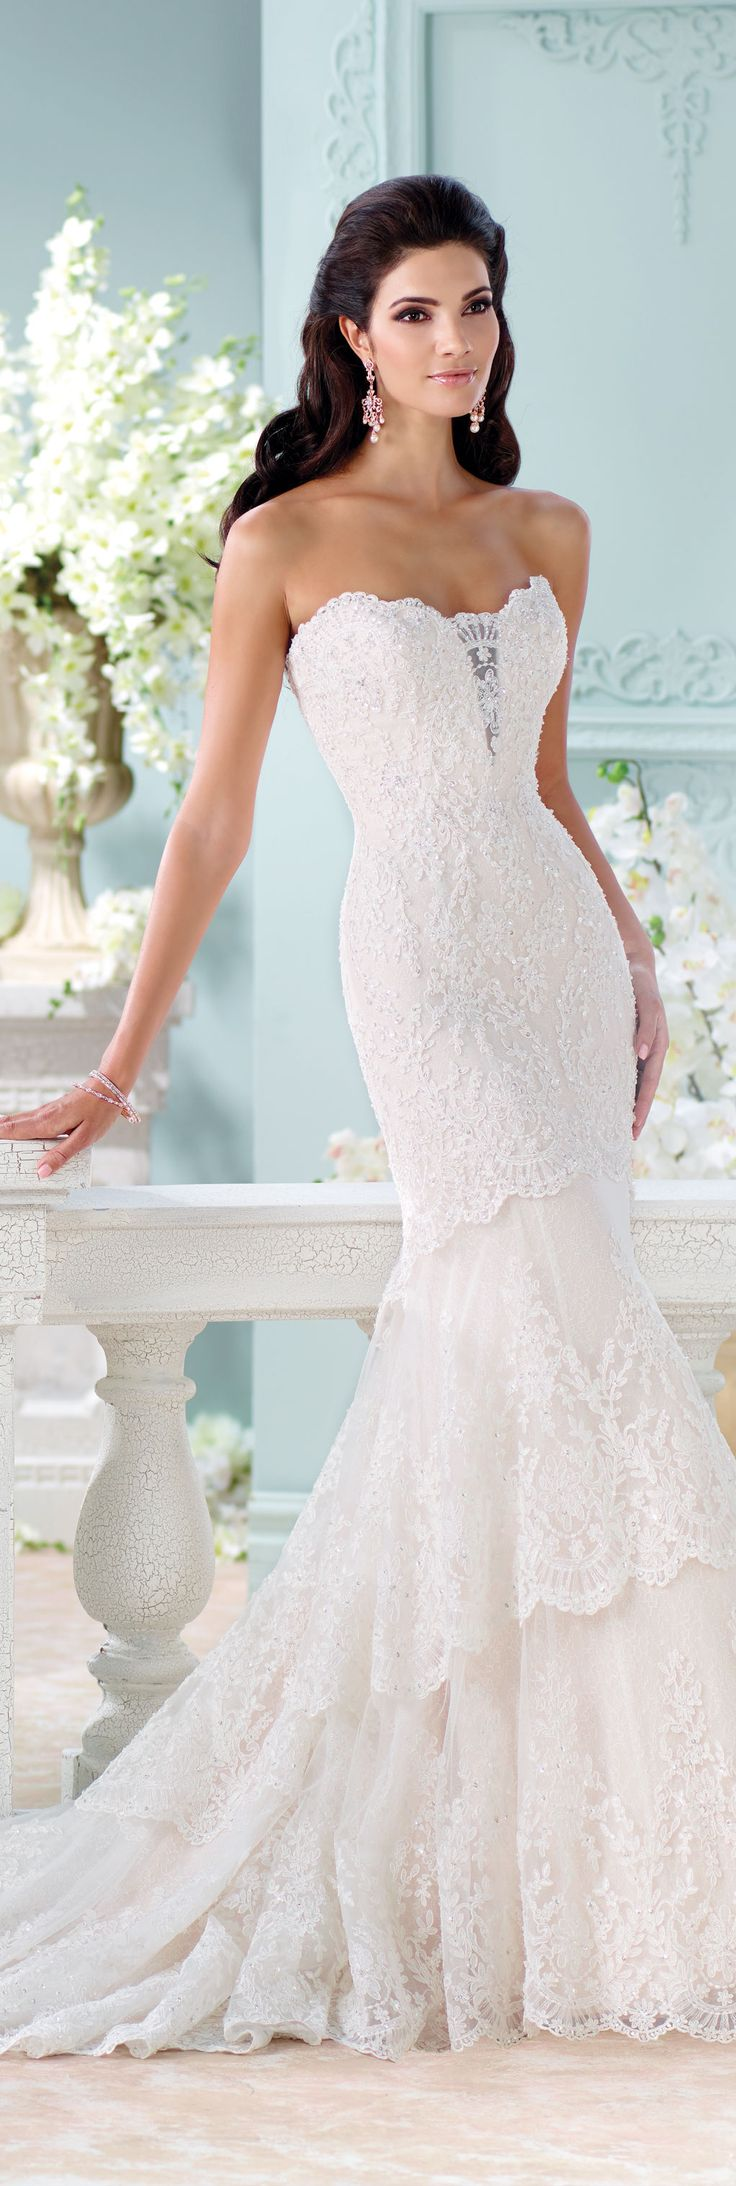 The David Tutera for Mon Cheri Spring 2016 Wedding Gown Collection - Style No. 116212 Eliana  #laceweddingdresses